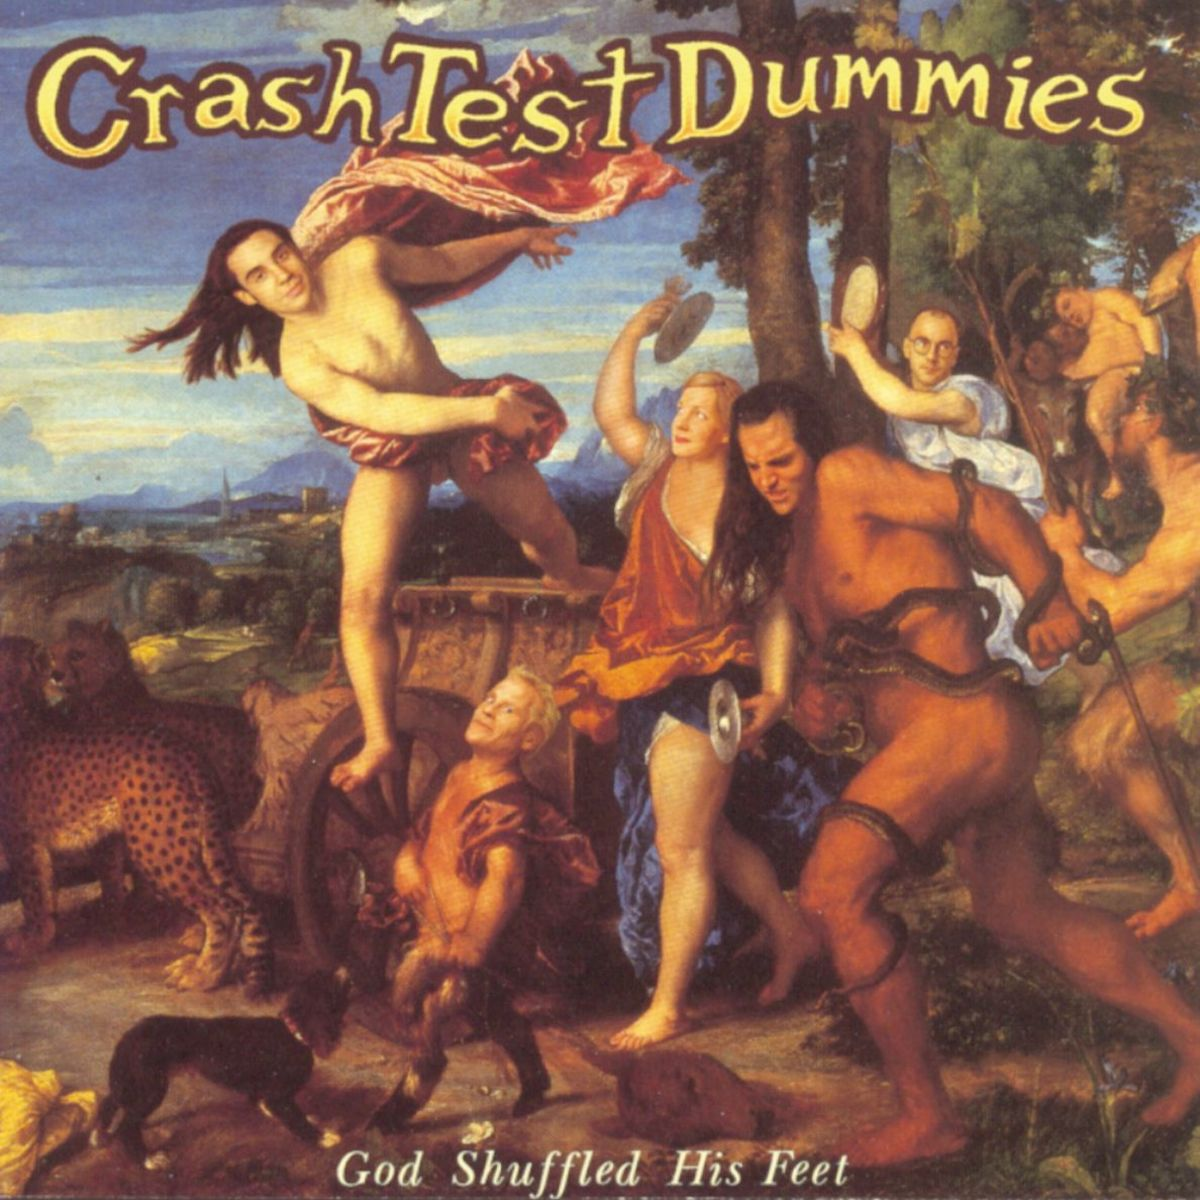 Crash Test Dummies Crash Test Dummies. God Shuffled His Feet. 25Th Anniversary (LP) crash test dummies crash test dummies oooh la la